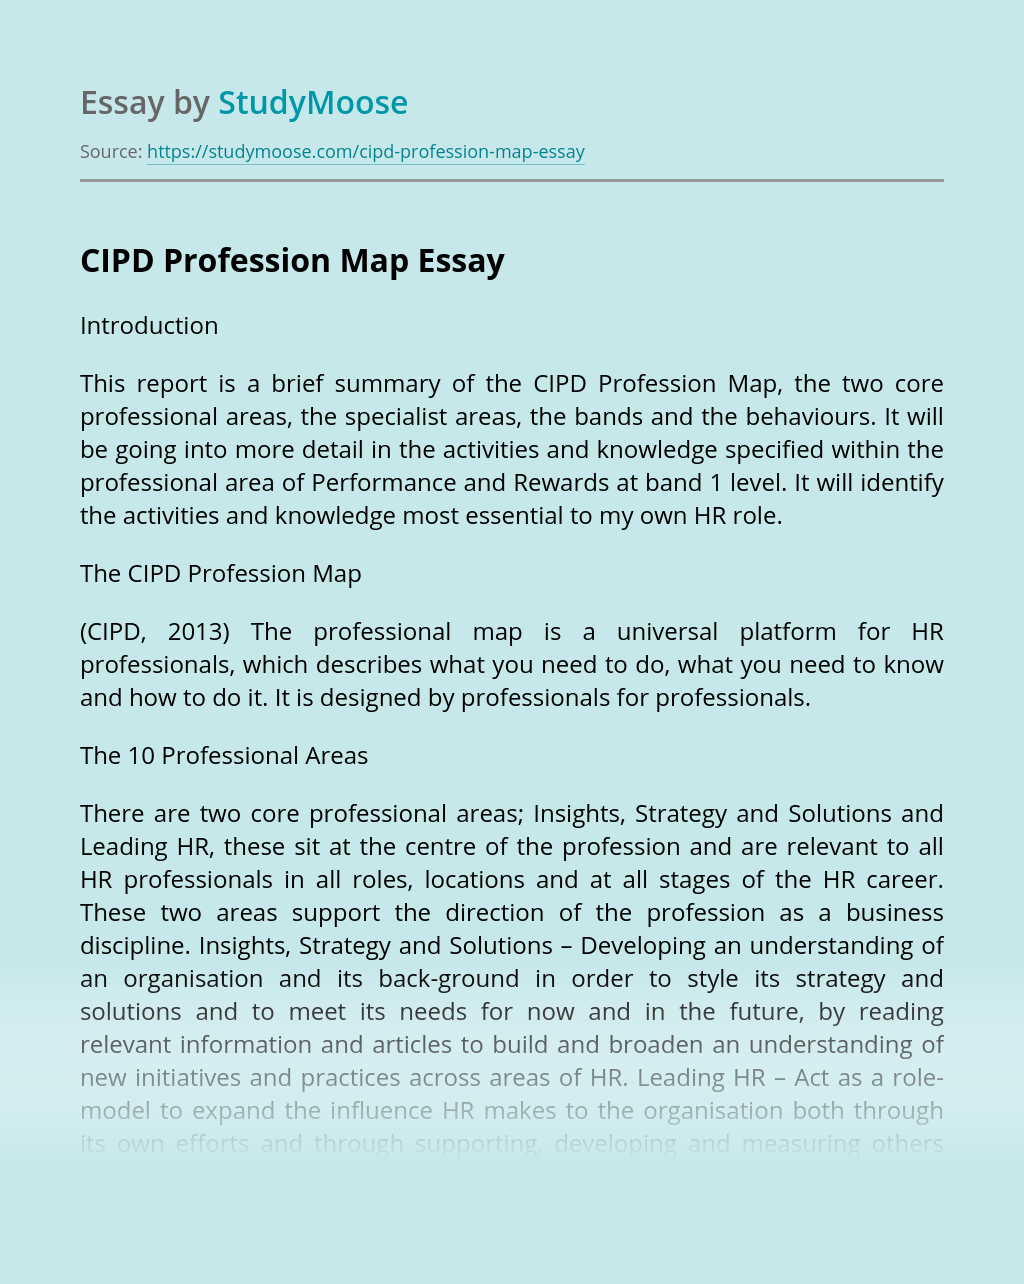 CIPD Profession Map